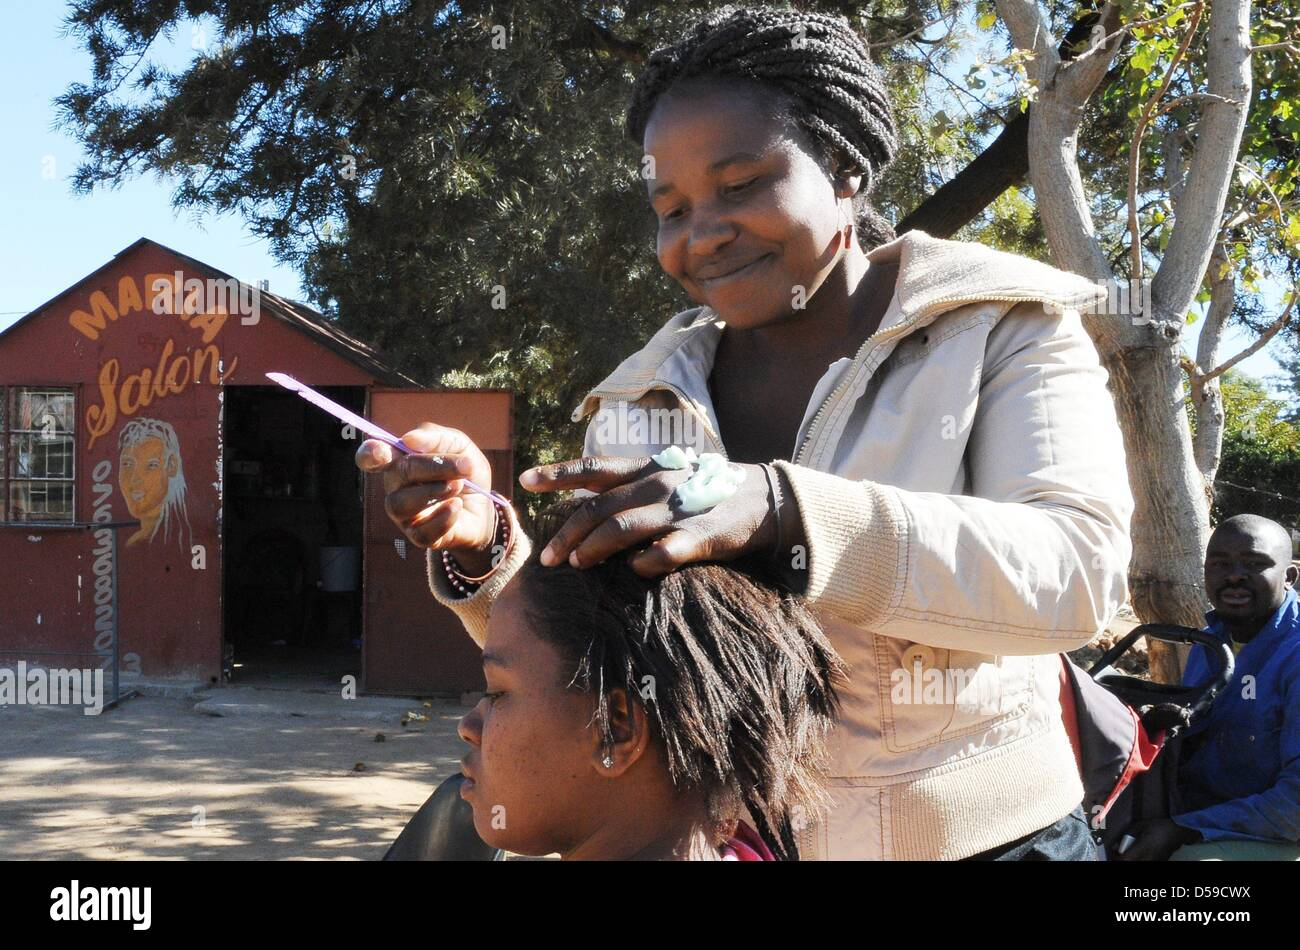 A young woman gets her done at Maria's Open Air Salon at a street close to Rustenburg's Royal Bafokeng Stadium - Stock Image